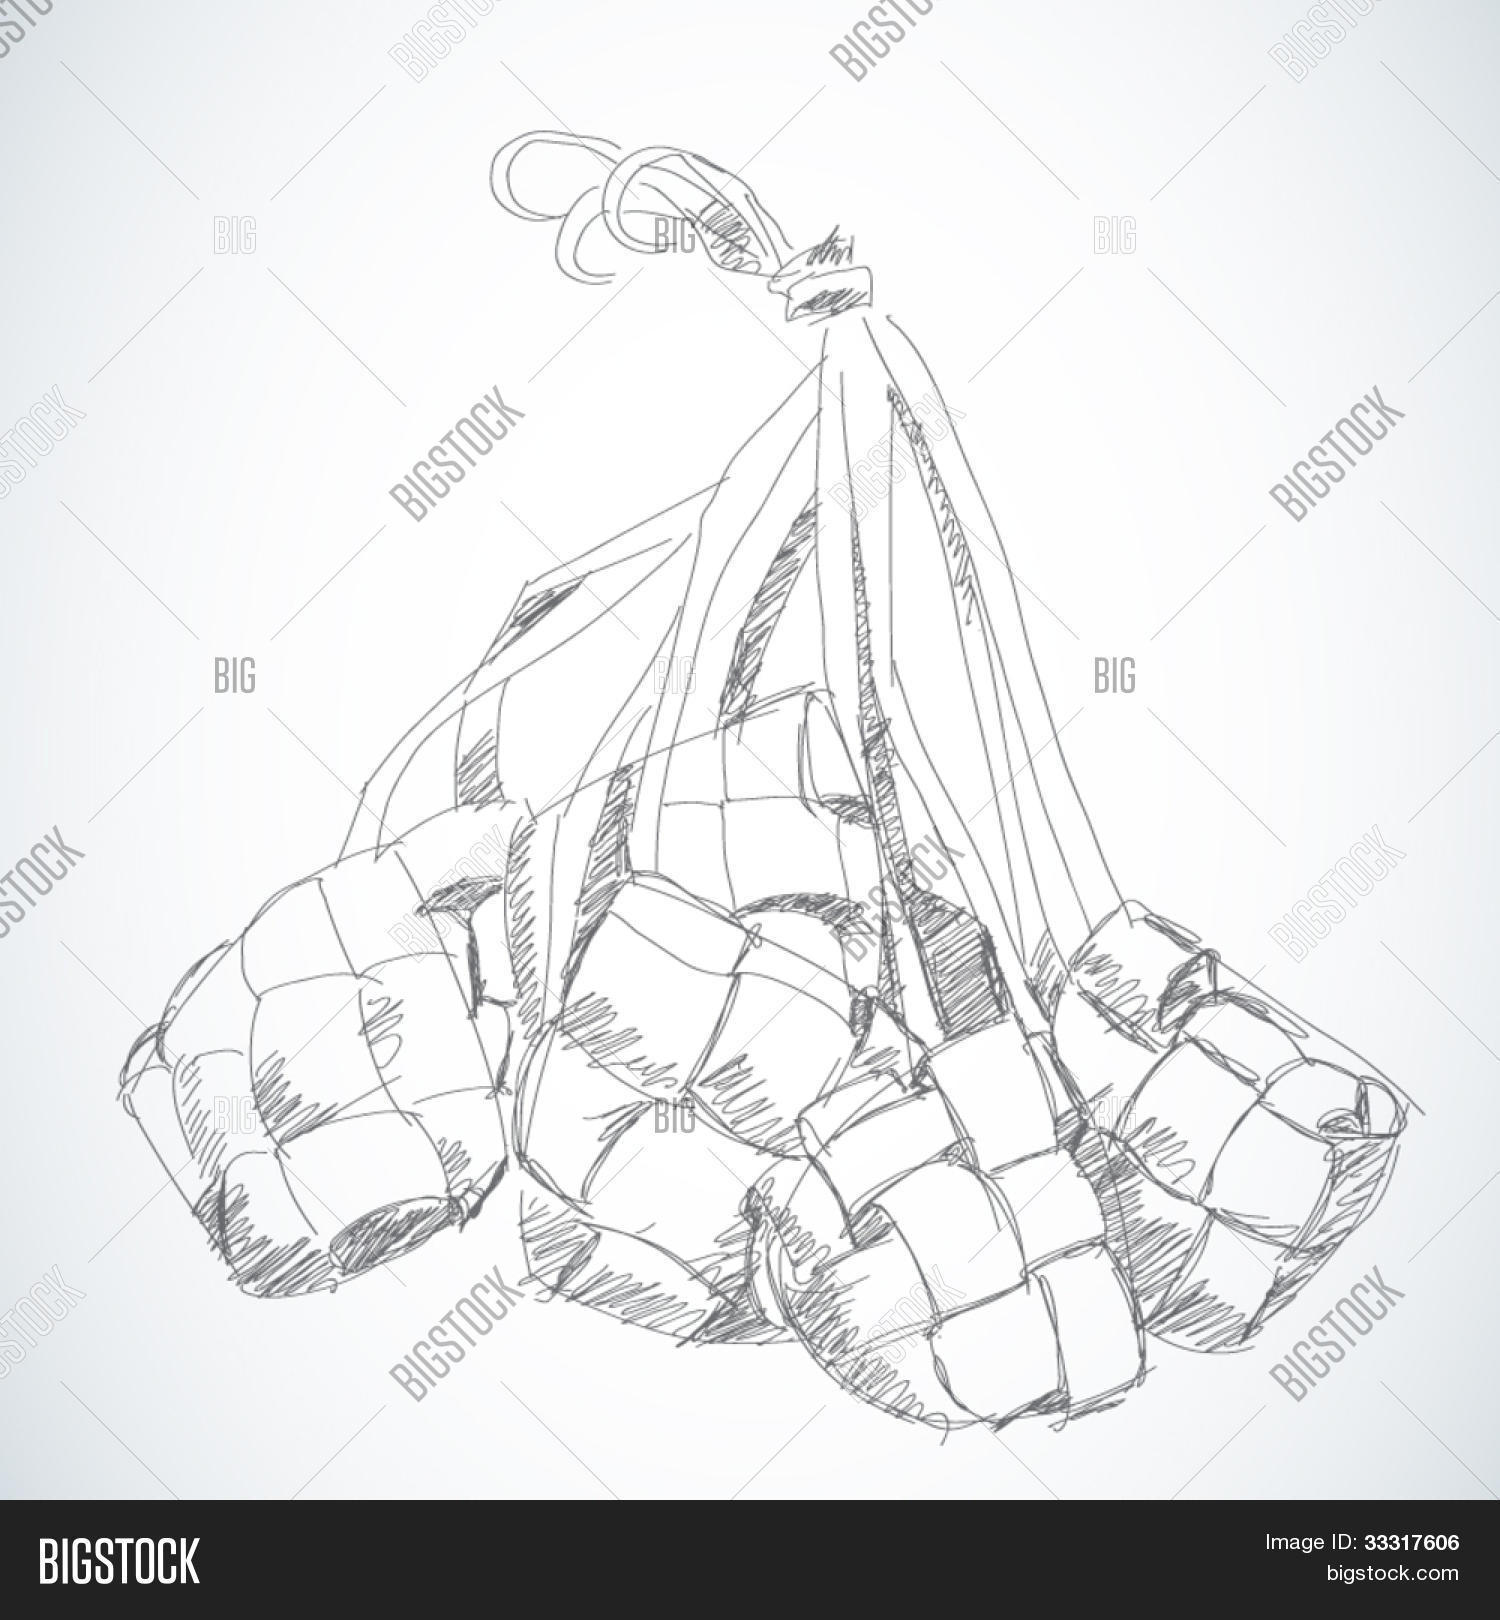 1500x1620 Vector Sketched Ketupat Muslim Traditional Rice Dumpling Image